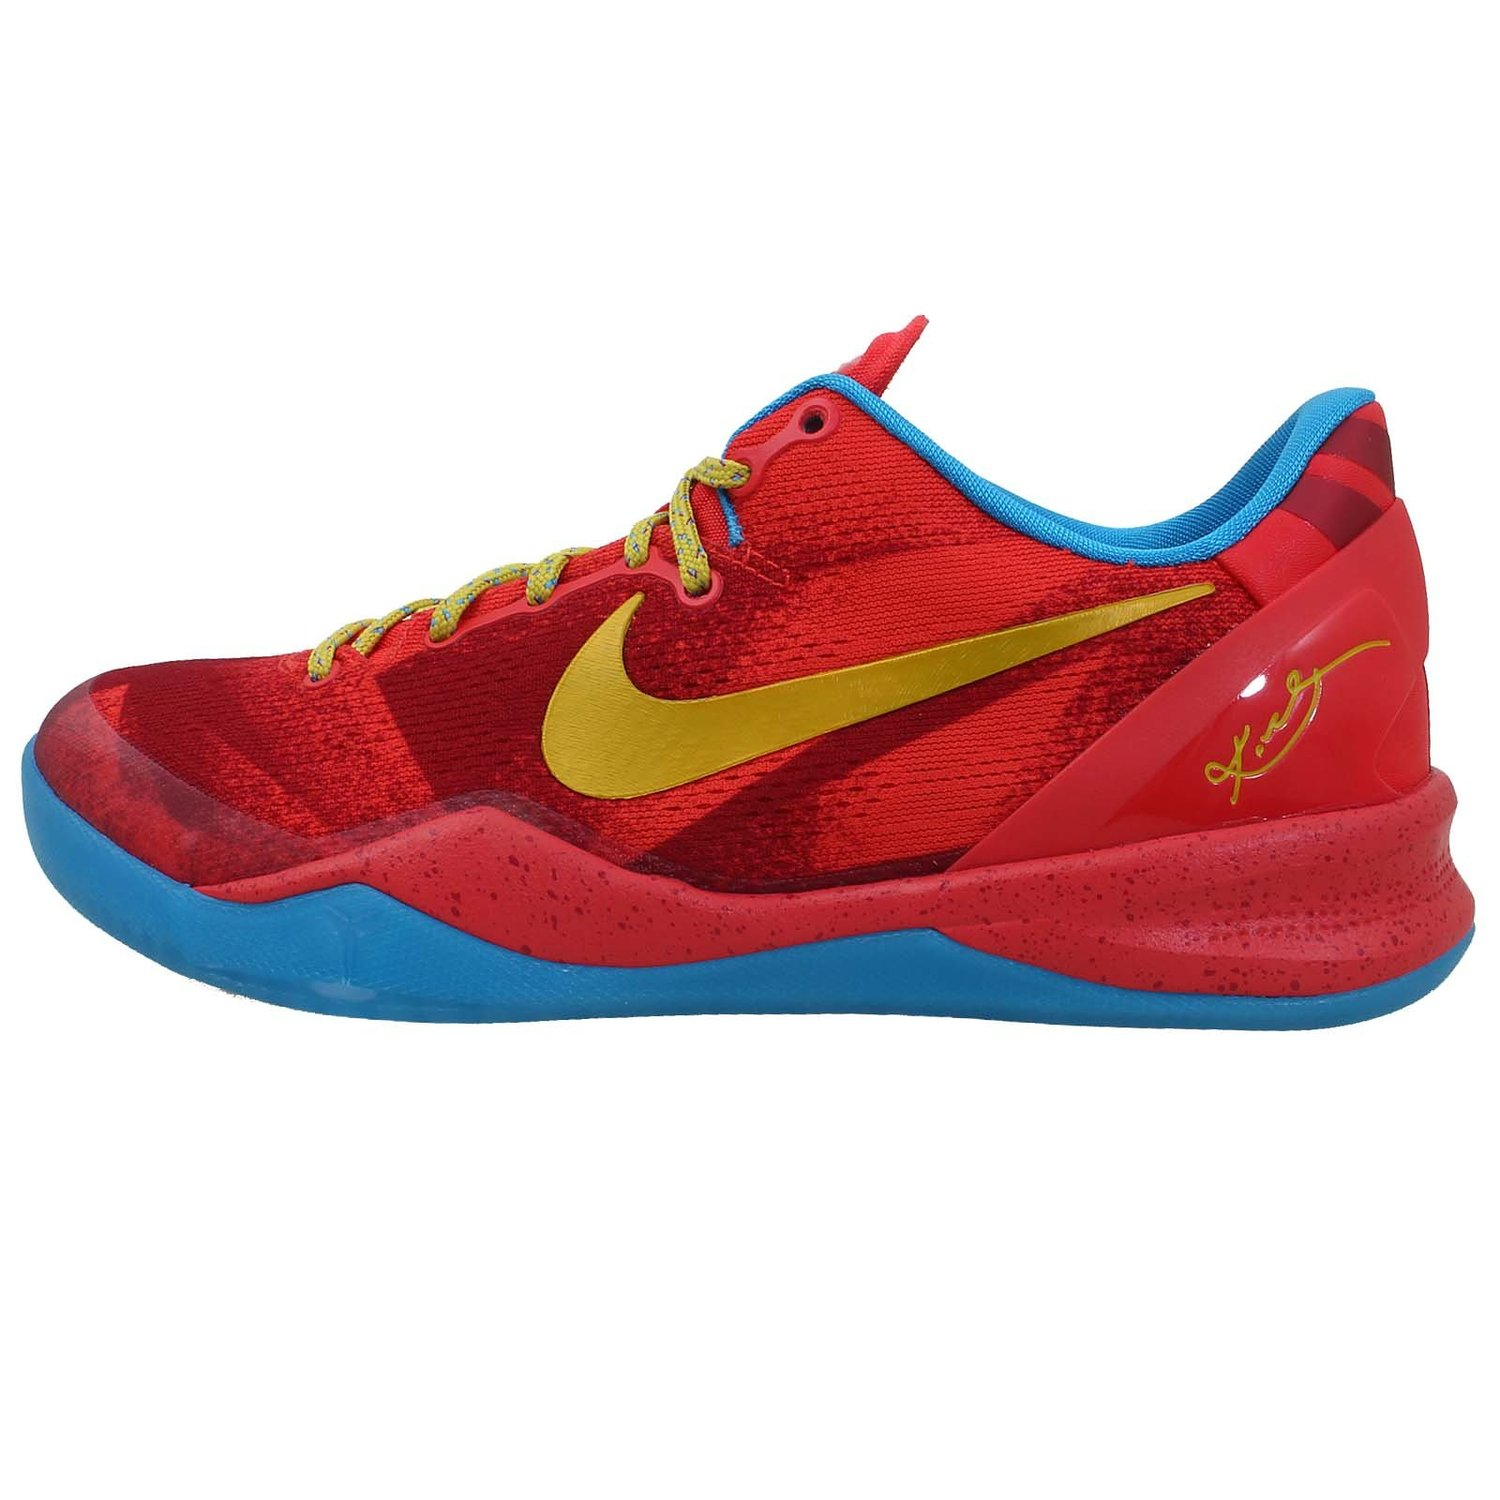 "Nike Mens Kobe 8 System YOTH ""Year of the Horse"" Synthetic Basketball Shoes"